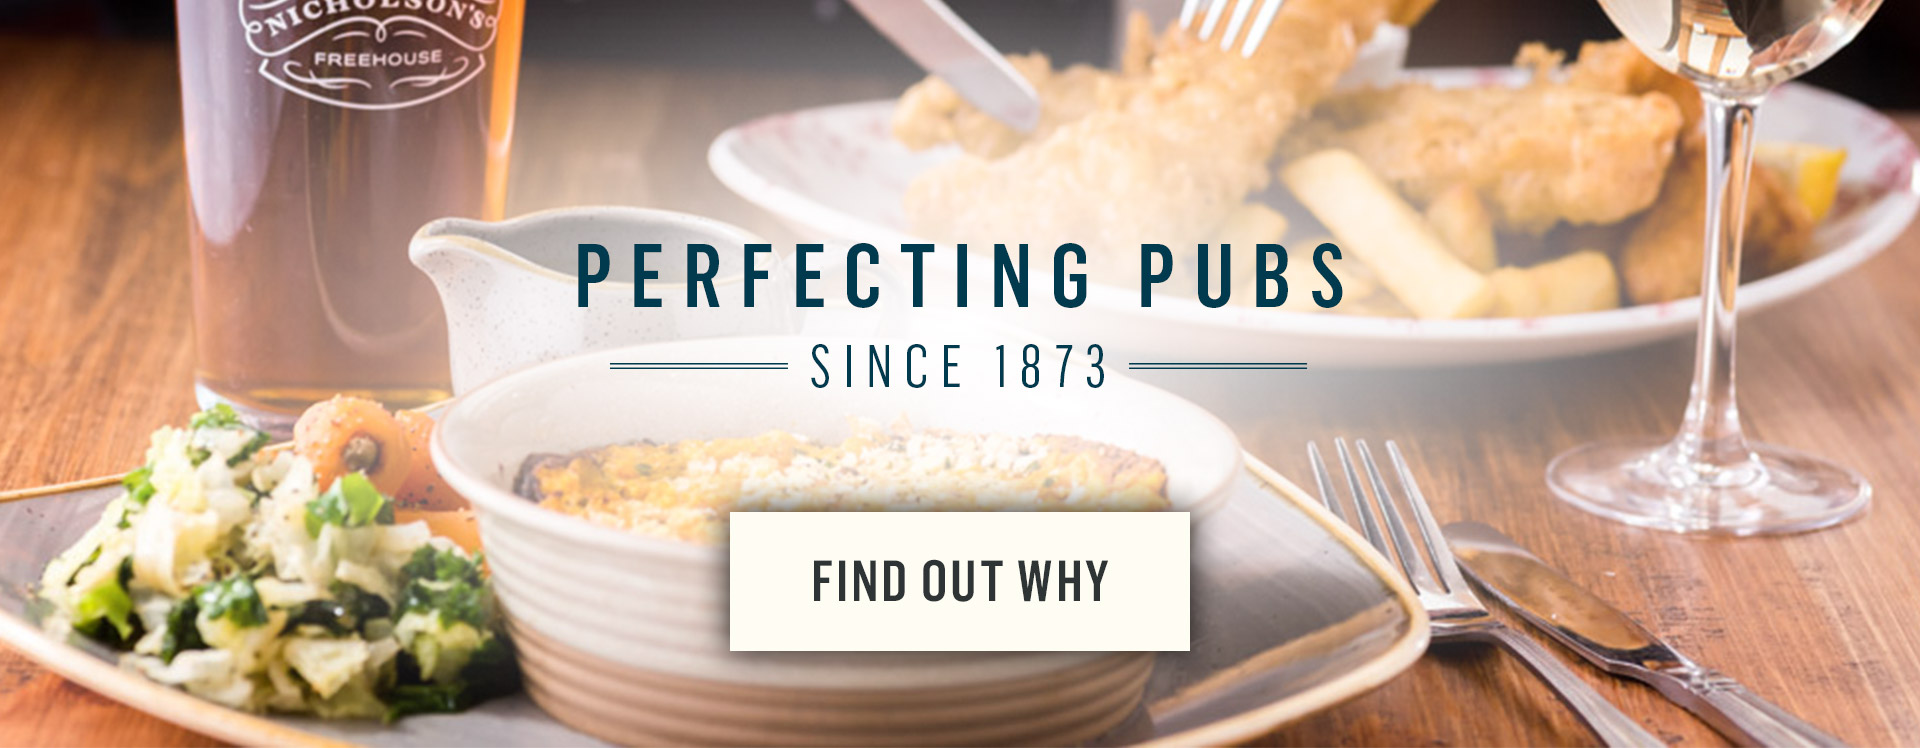 Perfecting pubs since 1873